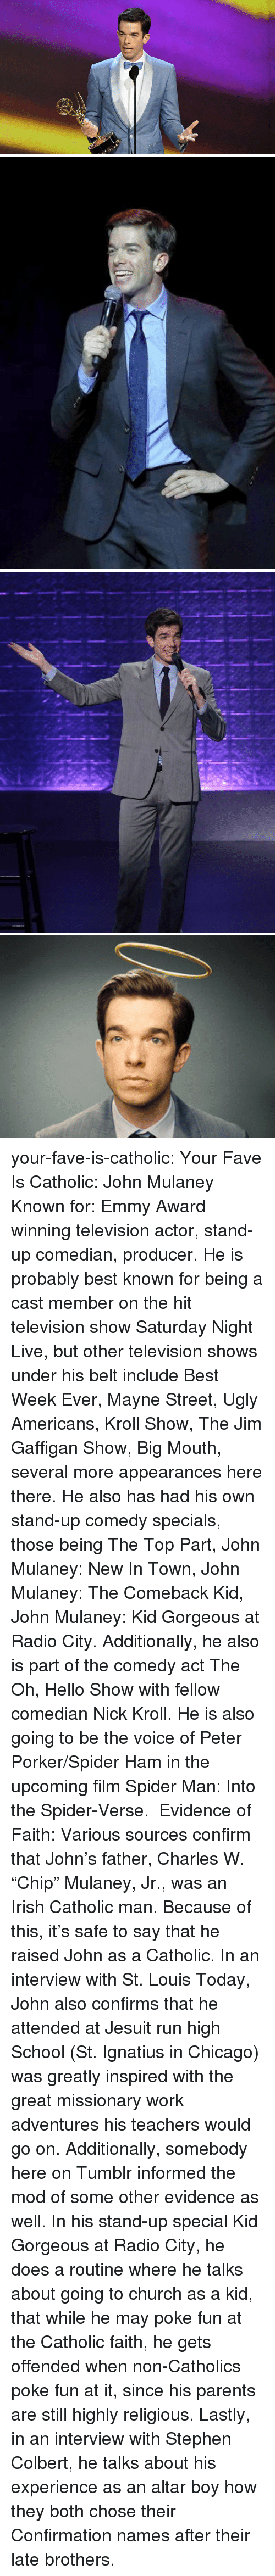 """emmy: your-fave-is-catholic: Your Fave Is Catholic: John Mulaney Known for: Emmy Award winning television actor, stand-up comedian,  producer. He is probably best known for being a cast member on the hit television show Saturday Night Live, but other television shows under his belt include Best Week Ever, Mayne Street, Ugly Americans, Kroll Show, The Jim Gaffigan Show, Big Mouth,  several more appearances here  there. He also has had his own stand-up comedy specials, those being The Top Part, John Mulaney: New In Town, John Mulaney: The Comeback Kid,  John Mulaney: Kid Gorgeous at Radio City. Additionally, he also is part of the comedy act The Oh, Hello Show with fellow comedian Nick Kroll. He is also going to be the voice of Peter Porker/Spider Ham in the upcoming film Spider Man: Into the Spider-Verse. Evidence of Faith: Various sources confirm that John's father, Charles W. """"Chip"""" Mulaney, Jr., was an Irish Catholic man. Because of this, it's safe to say that he raised John as a Catholic. In an interview with St. Louis Today, John also confirms that he attended at Jesuit run high School (St. Ignatius in Chicago)  was greatly inspired with the great missionary work  adventures his teachers would go on. Additionally, somebody here on Tumblr informed the mod of some other evidence as well. In his stand-up special Kid Gorgeous at Radio City, he does a routine where he talks about going to church as a kid,  that while he may poke fun at the Catholic faith, he gets offended when non-Catholics poke fun at it, since his parents are still highly religious. Lastly, in an interview with Stephen Colbert, he talks about his experience as an altar boy  how they both chose their Confirmation names after their late brothers."""